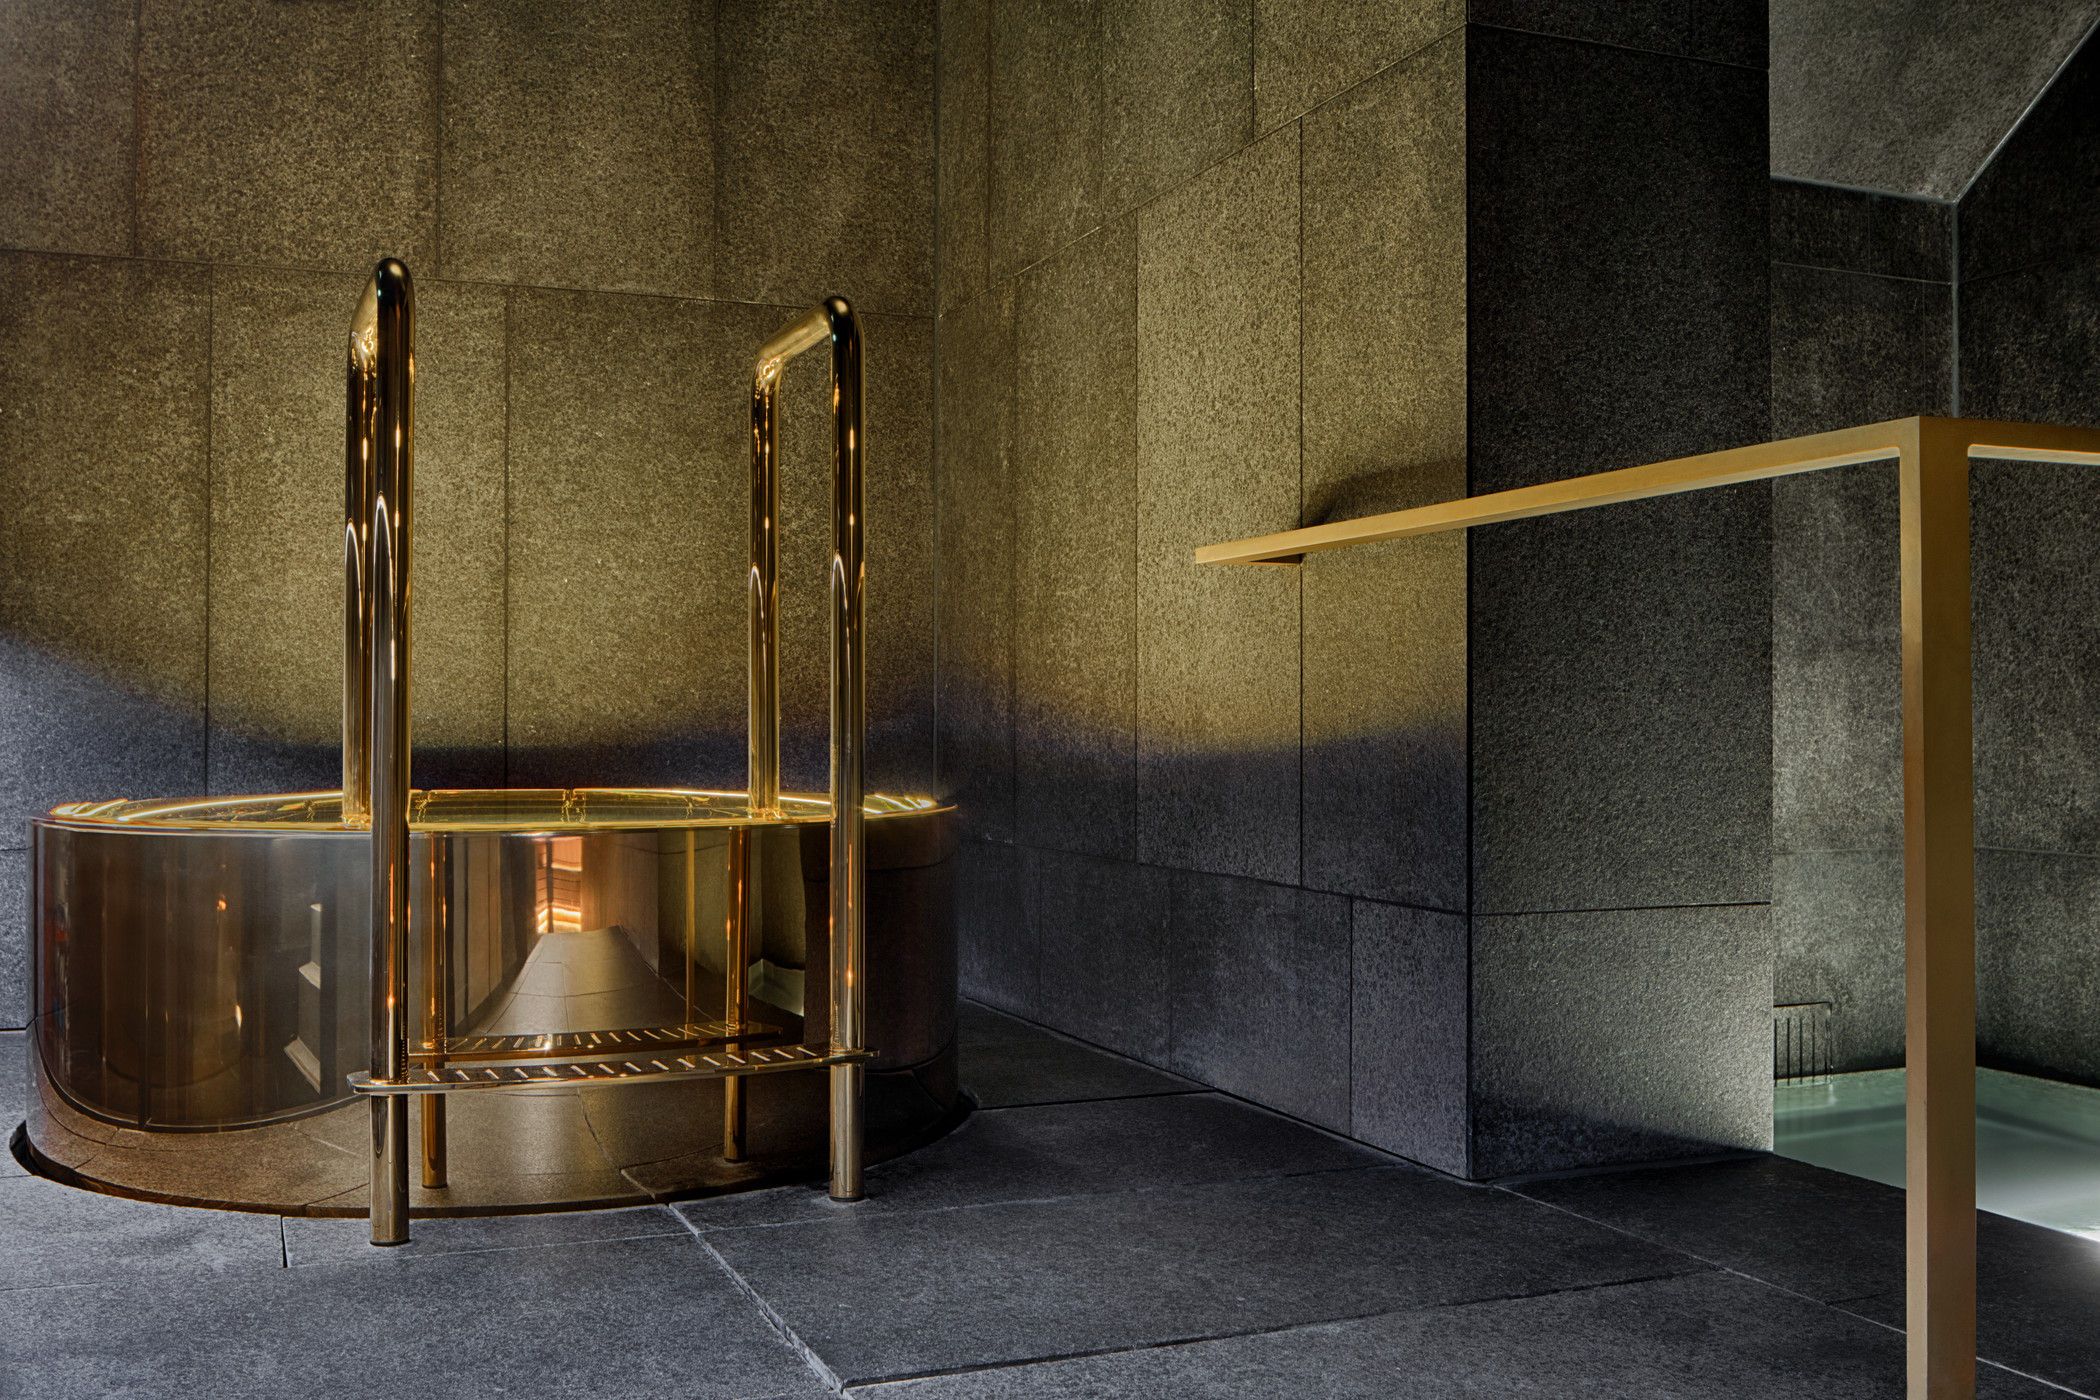 A spa fit for a bond villian. If your on business and in need of a steam/soak, look no further than the AWAY spa at the W Hotel  Read more here